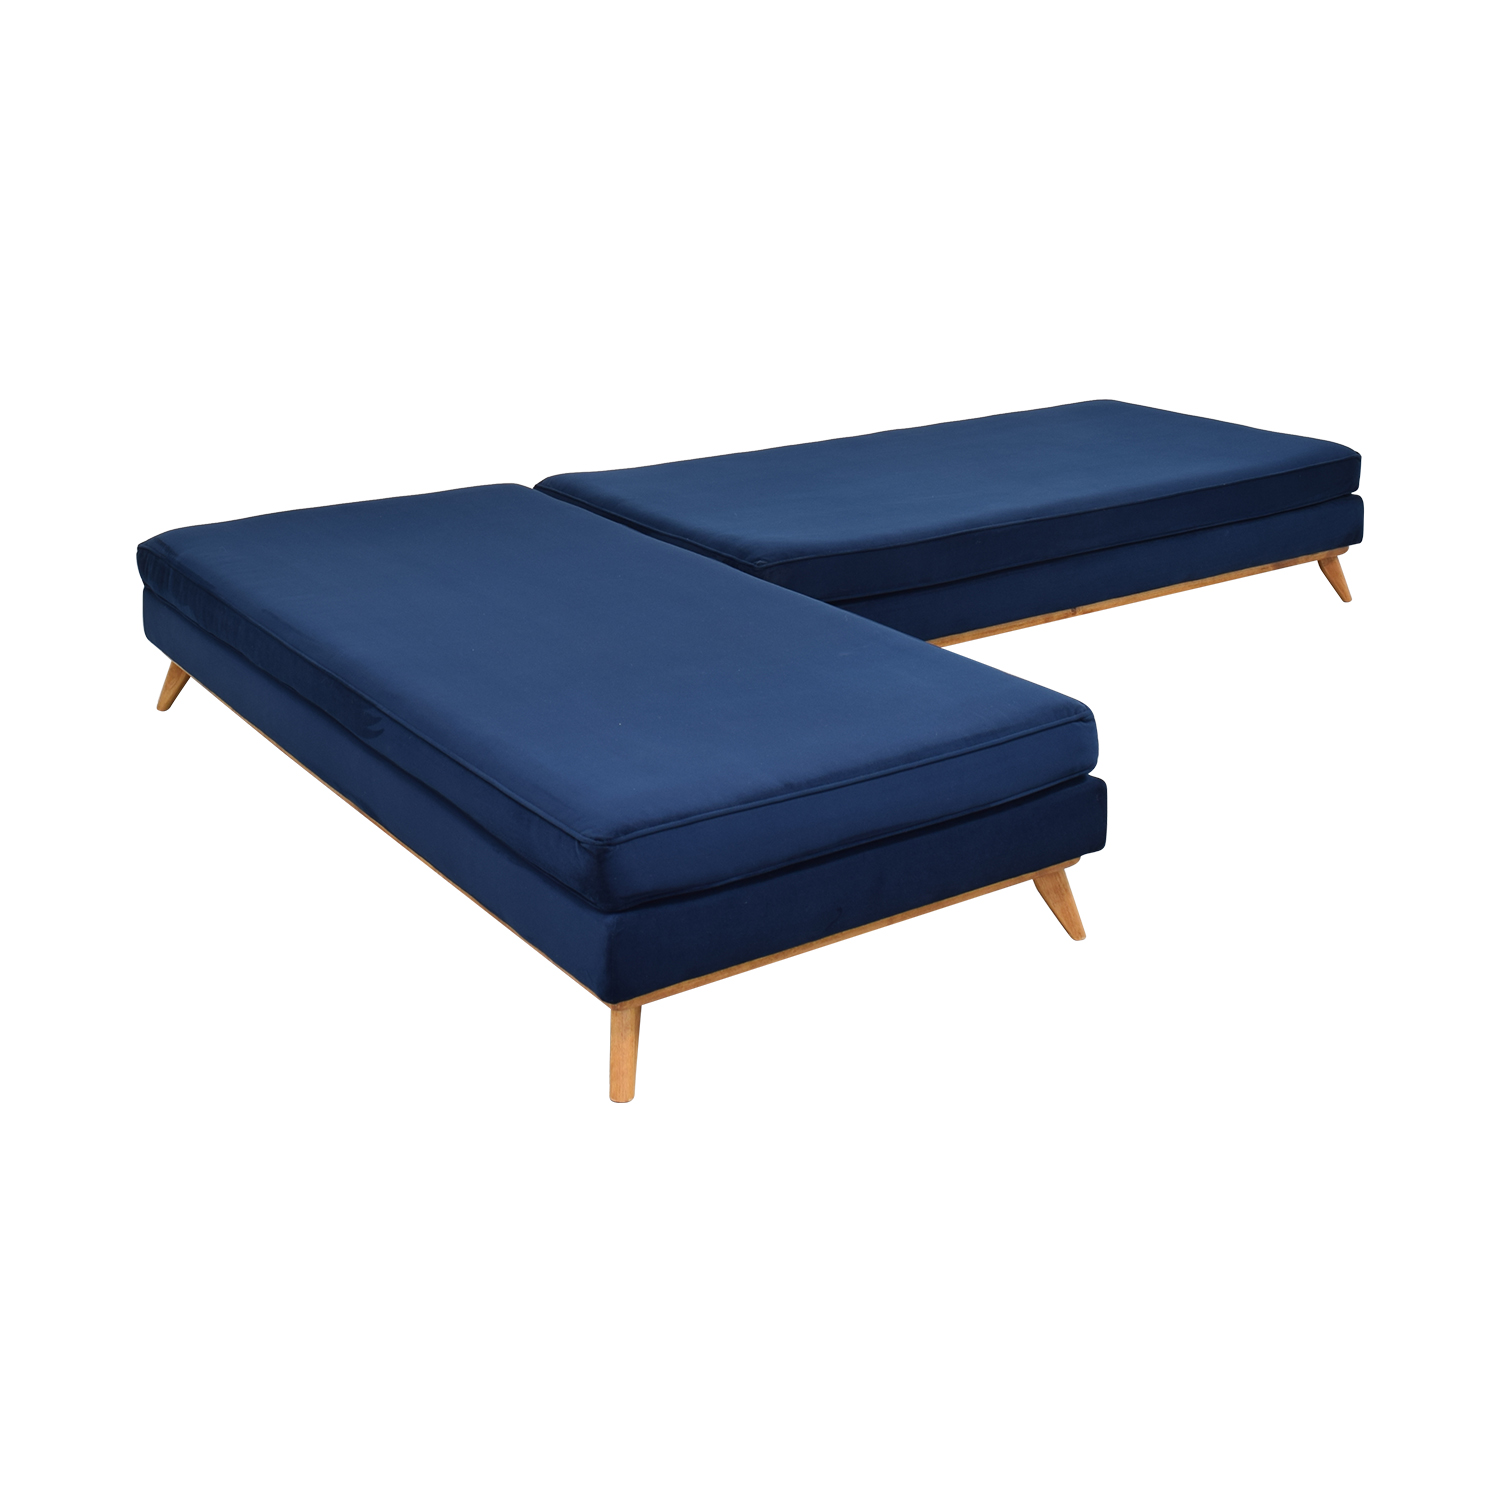 Total Design Furniture TDFurniture L-Shaped Sectional Convertible Day Bed price